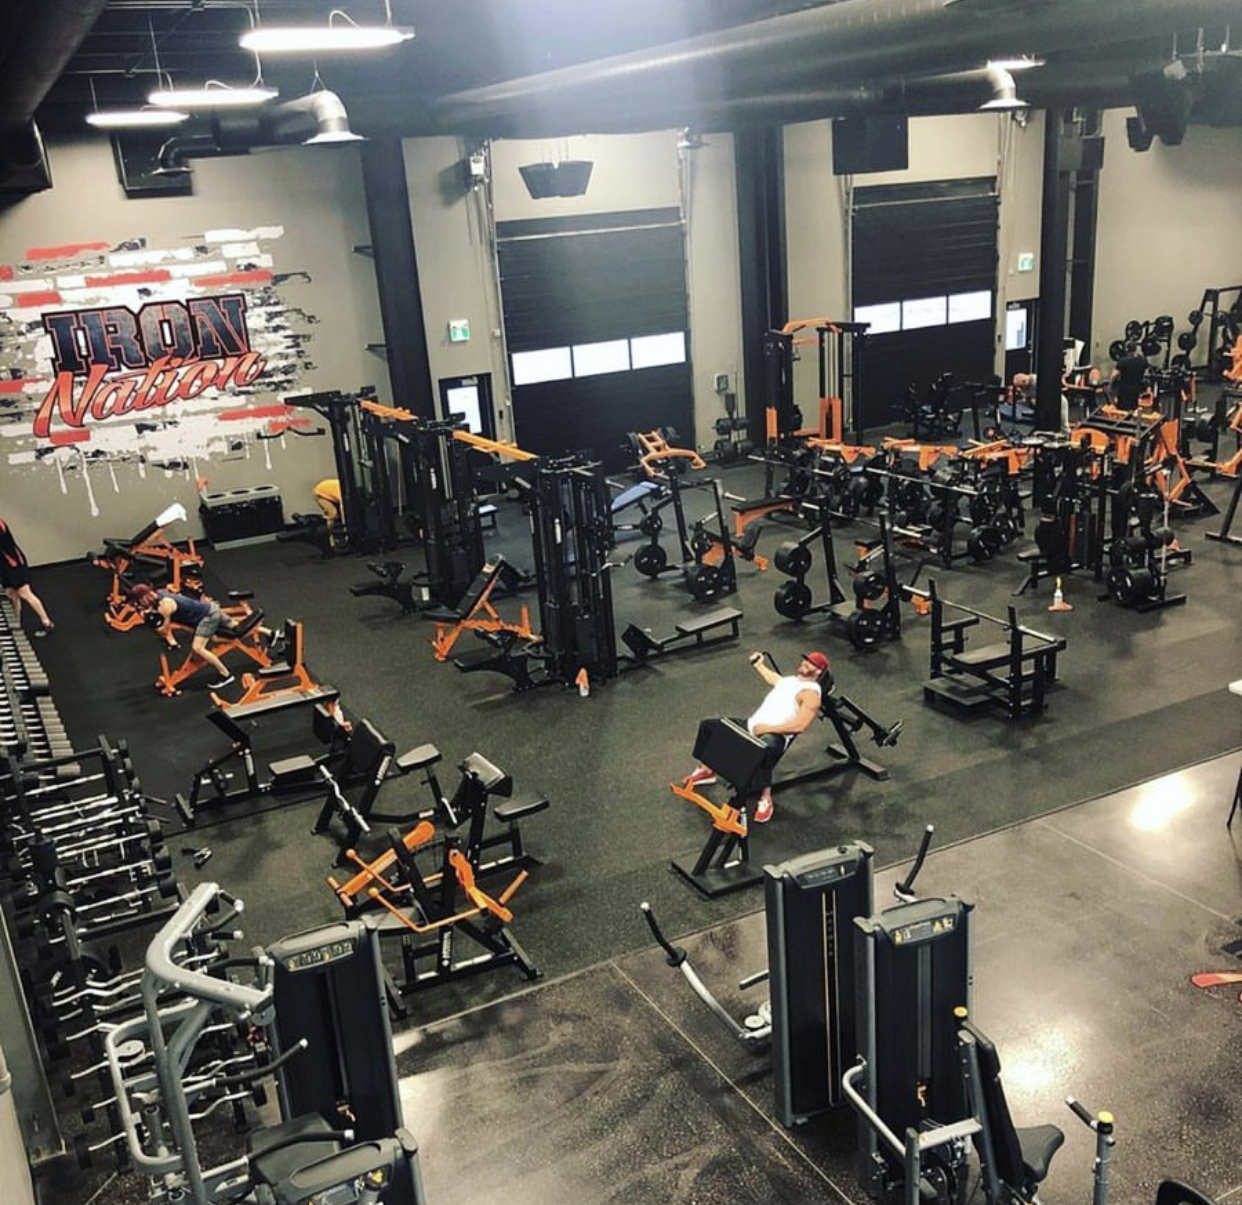 Iron Nation Fitness Gym Design by Arsenal Strength